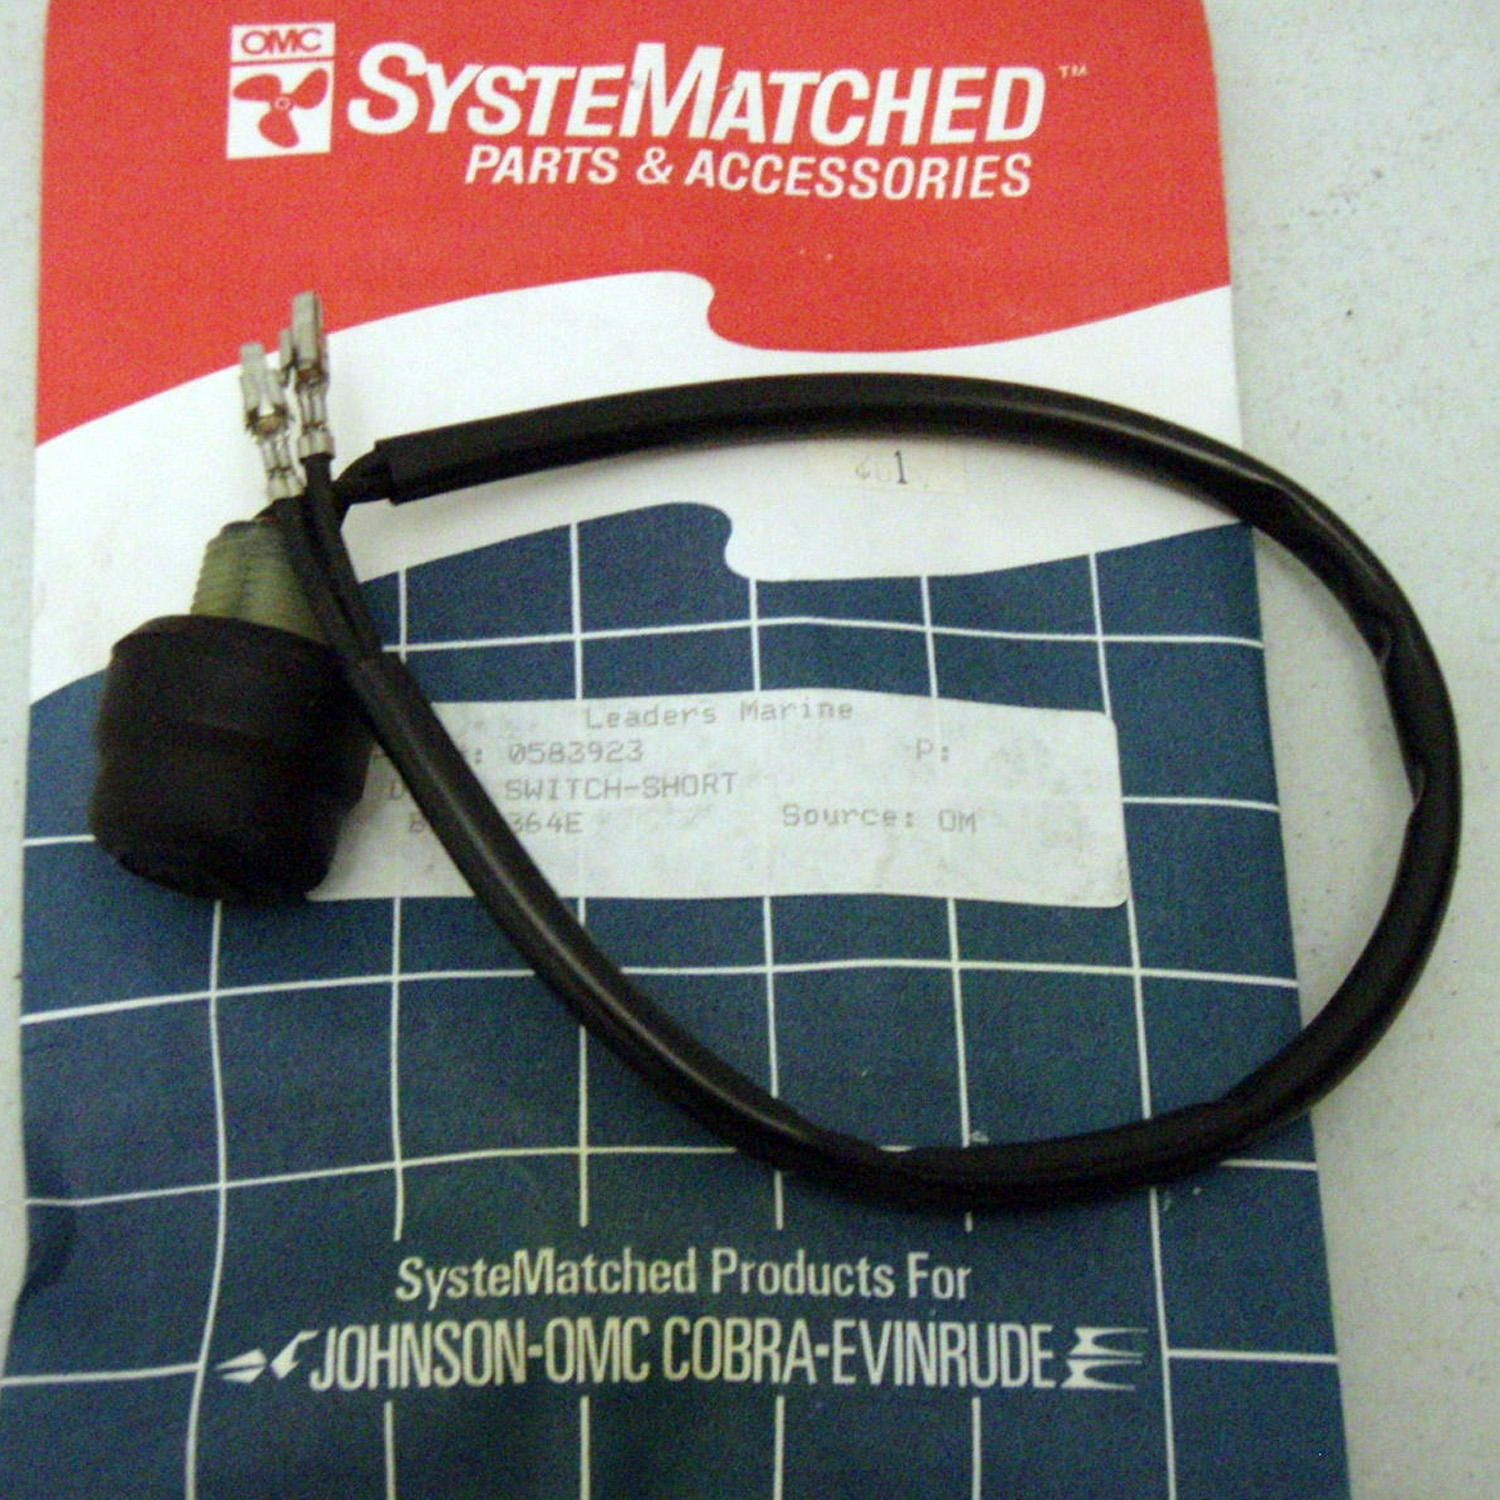 Omc Wiring Harness Boat Parts Ebay Electrical Diagrams For Johnson Outboards Evinrude Tiller Handle Stop Switch 0583923 Merc New Oem